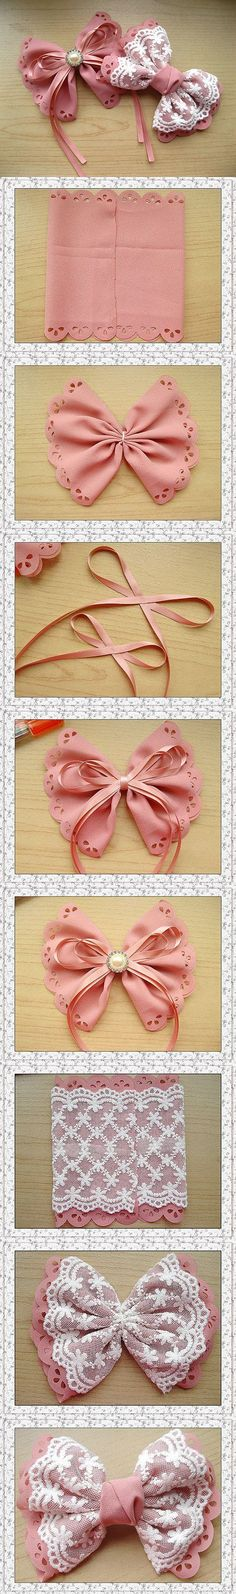 Hairbows. So cute.